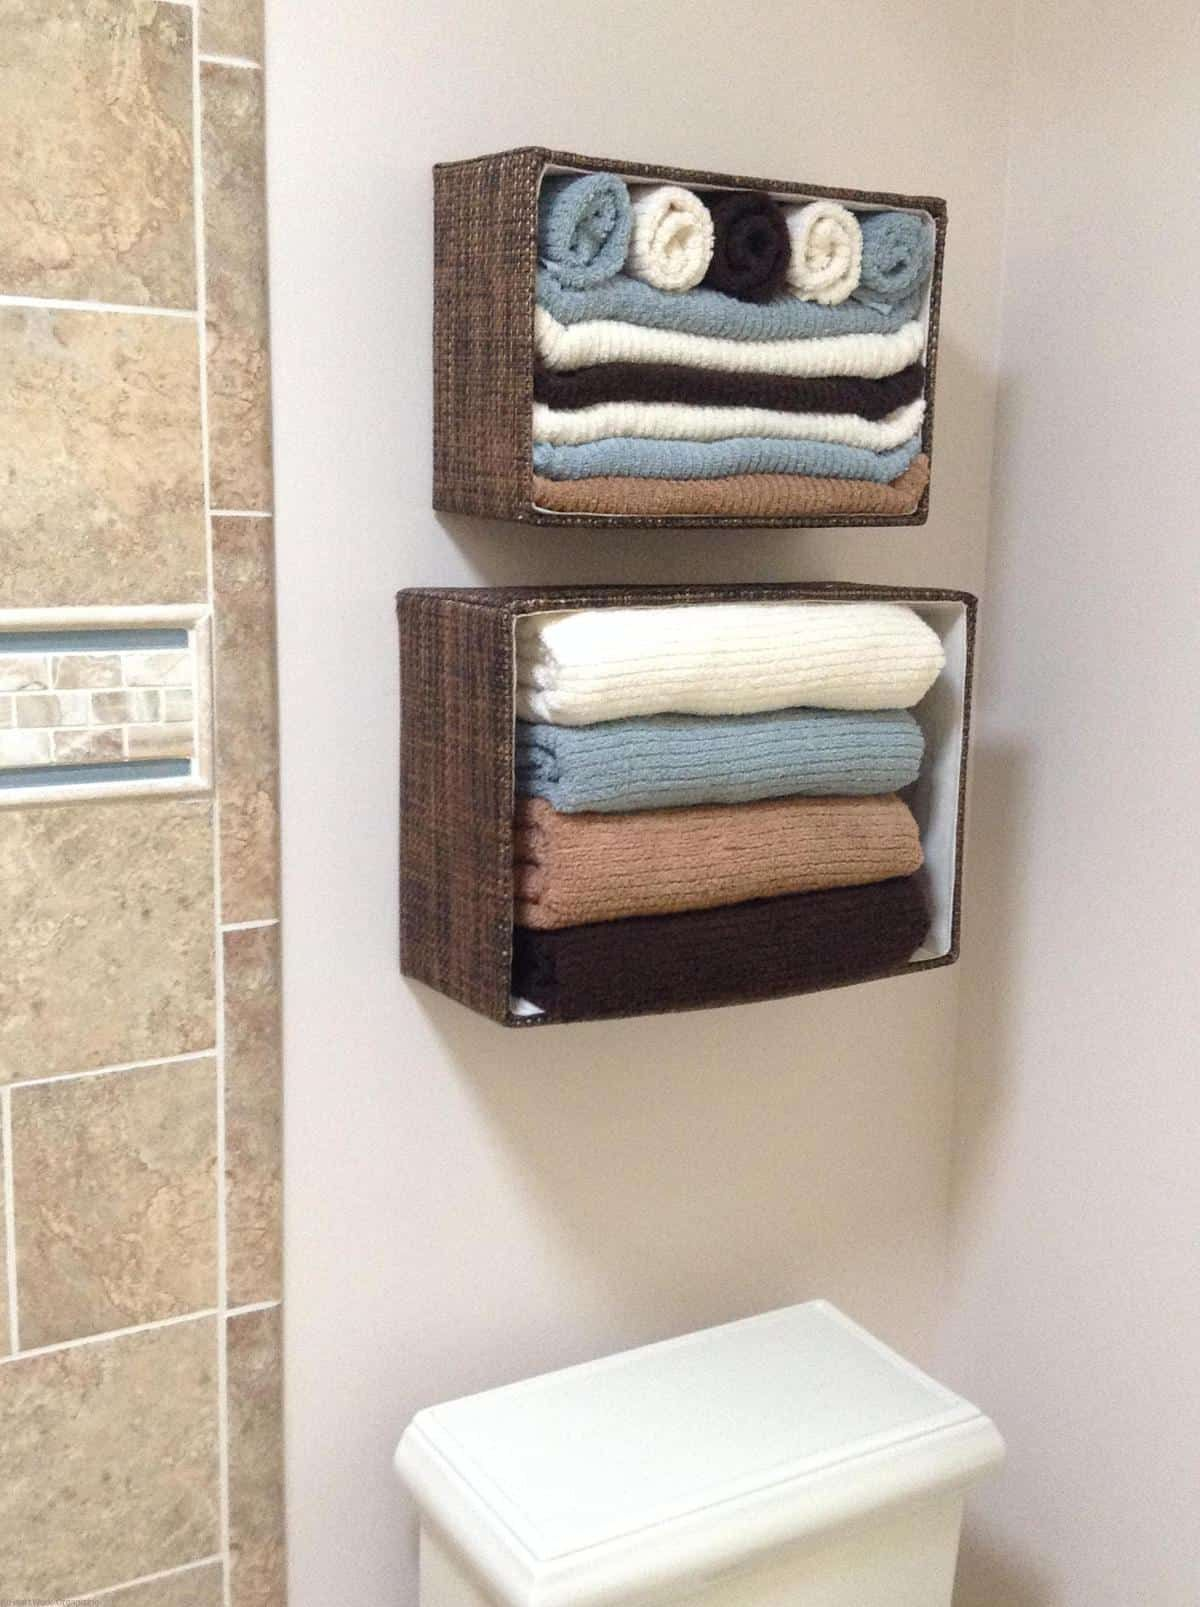 How To Get Organized Using What You Have Towel Organization